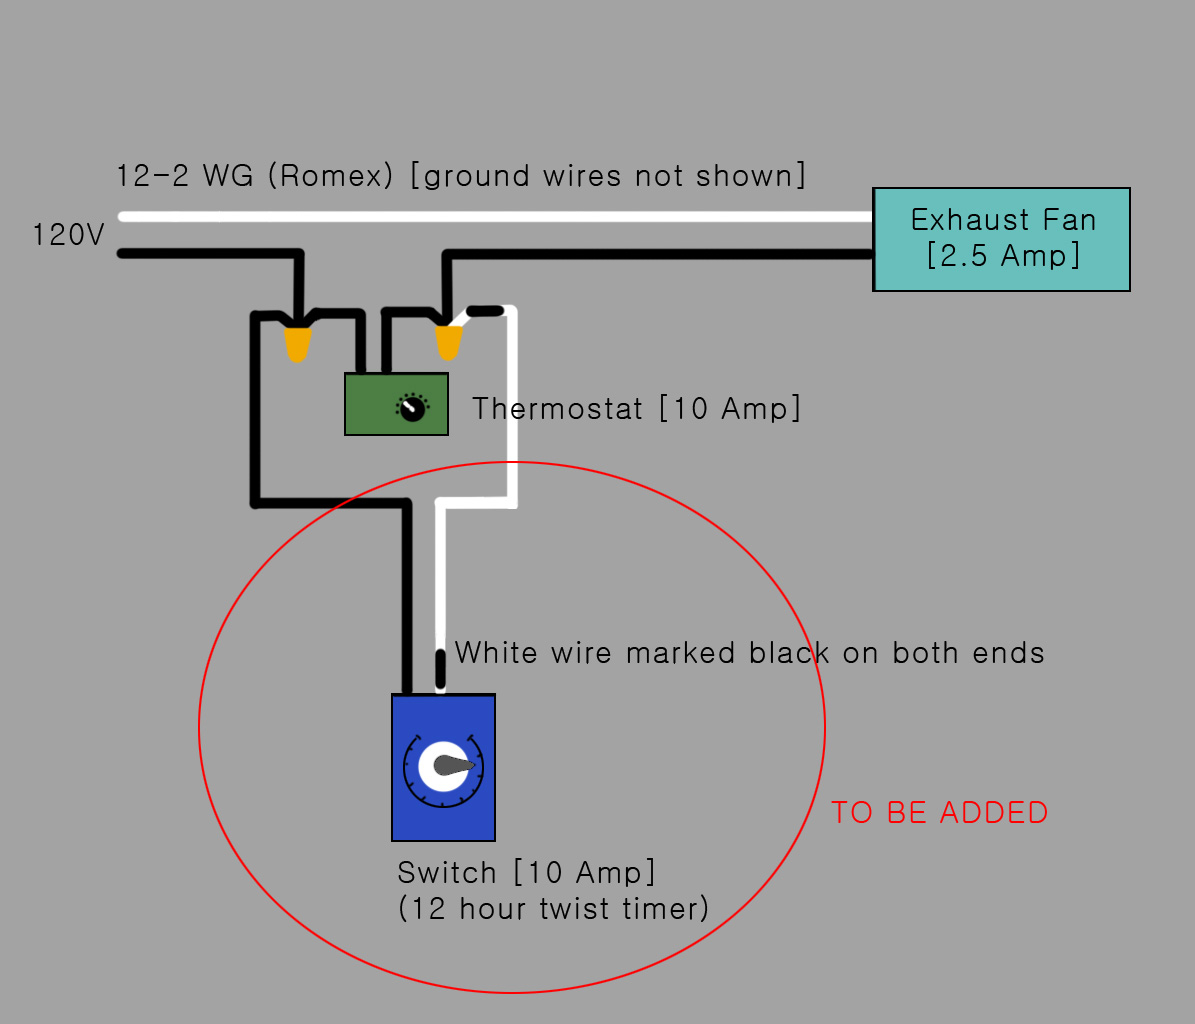 Attic Wiring Diagram Unlimited Access To Information Together With Bathroom Fan Light Switch Smashing Rmostat Free Download Rh K1sa Wisemamablog Com Electrical Proper